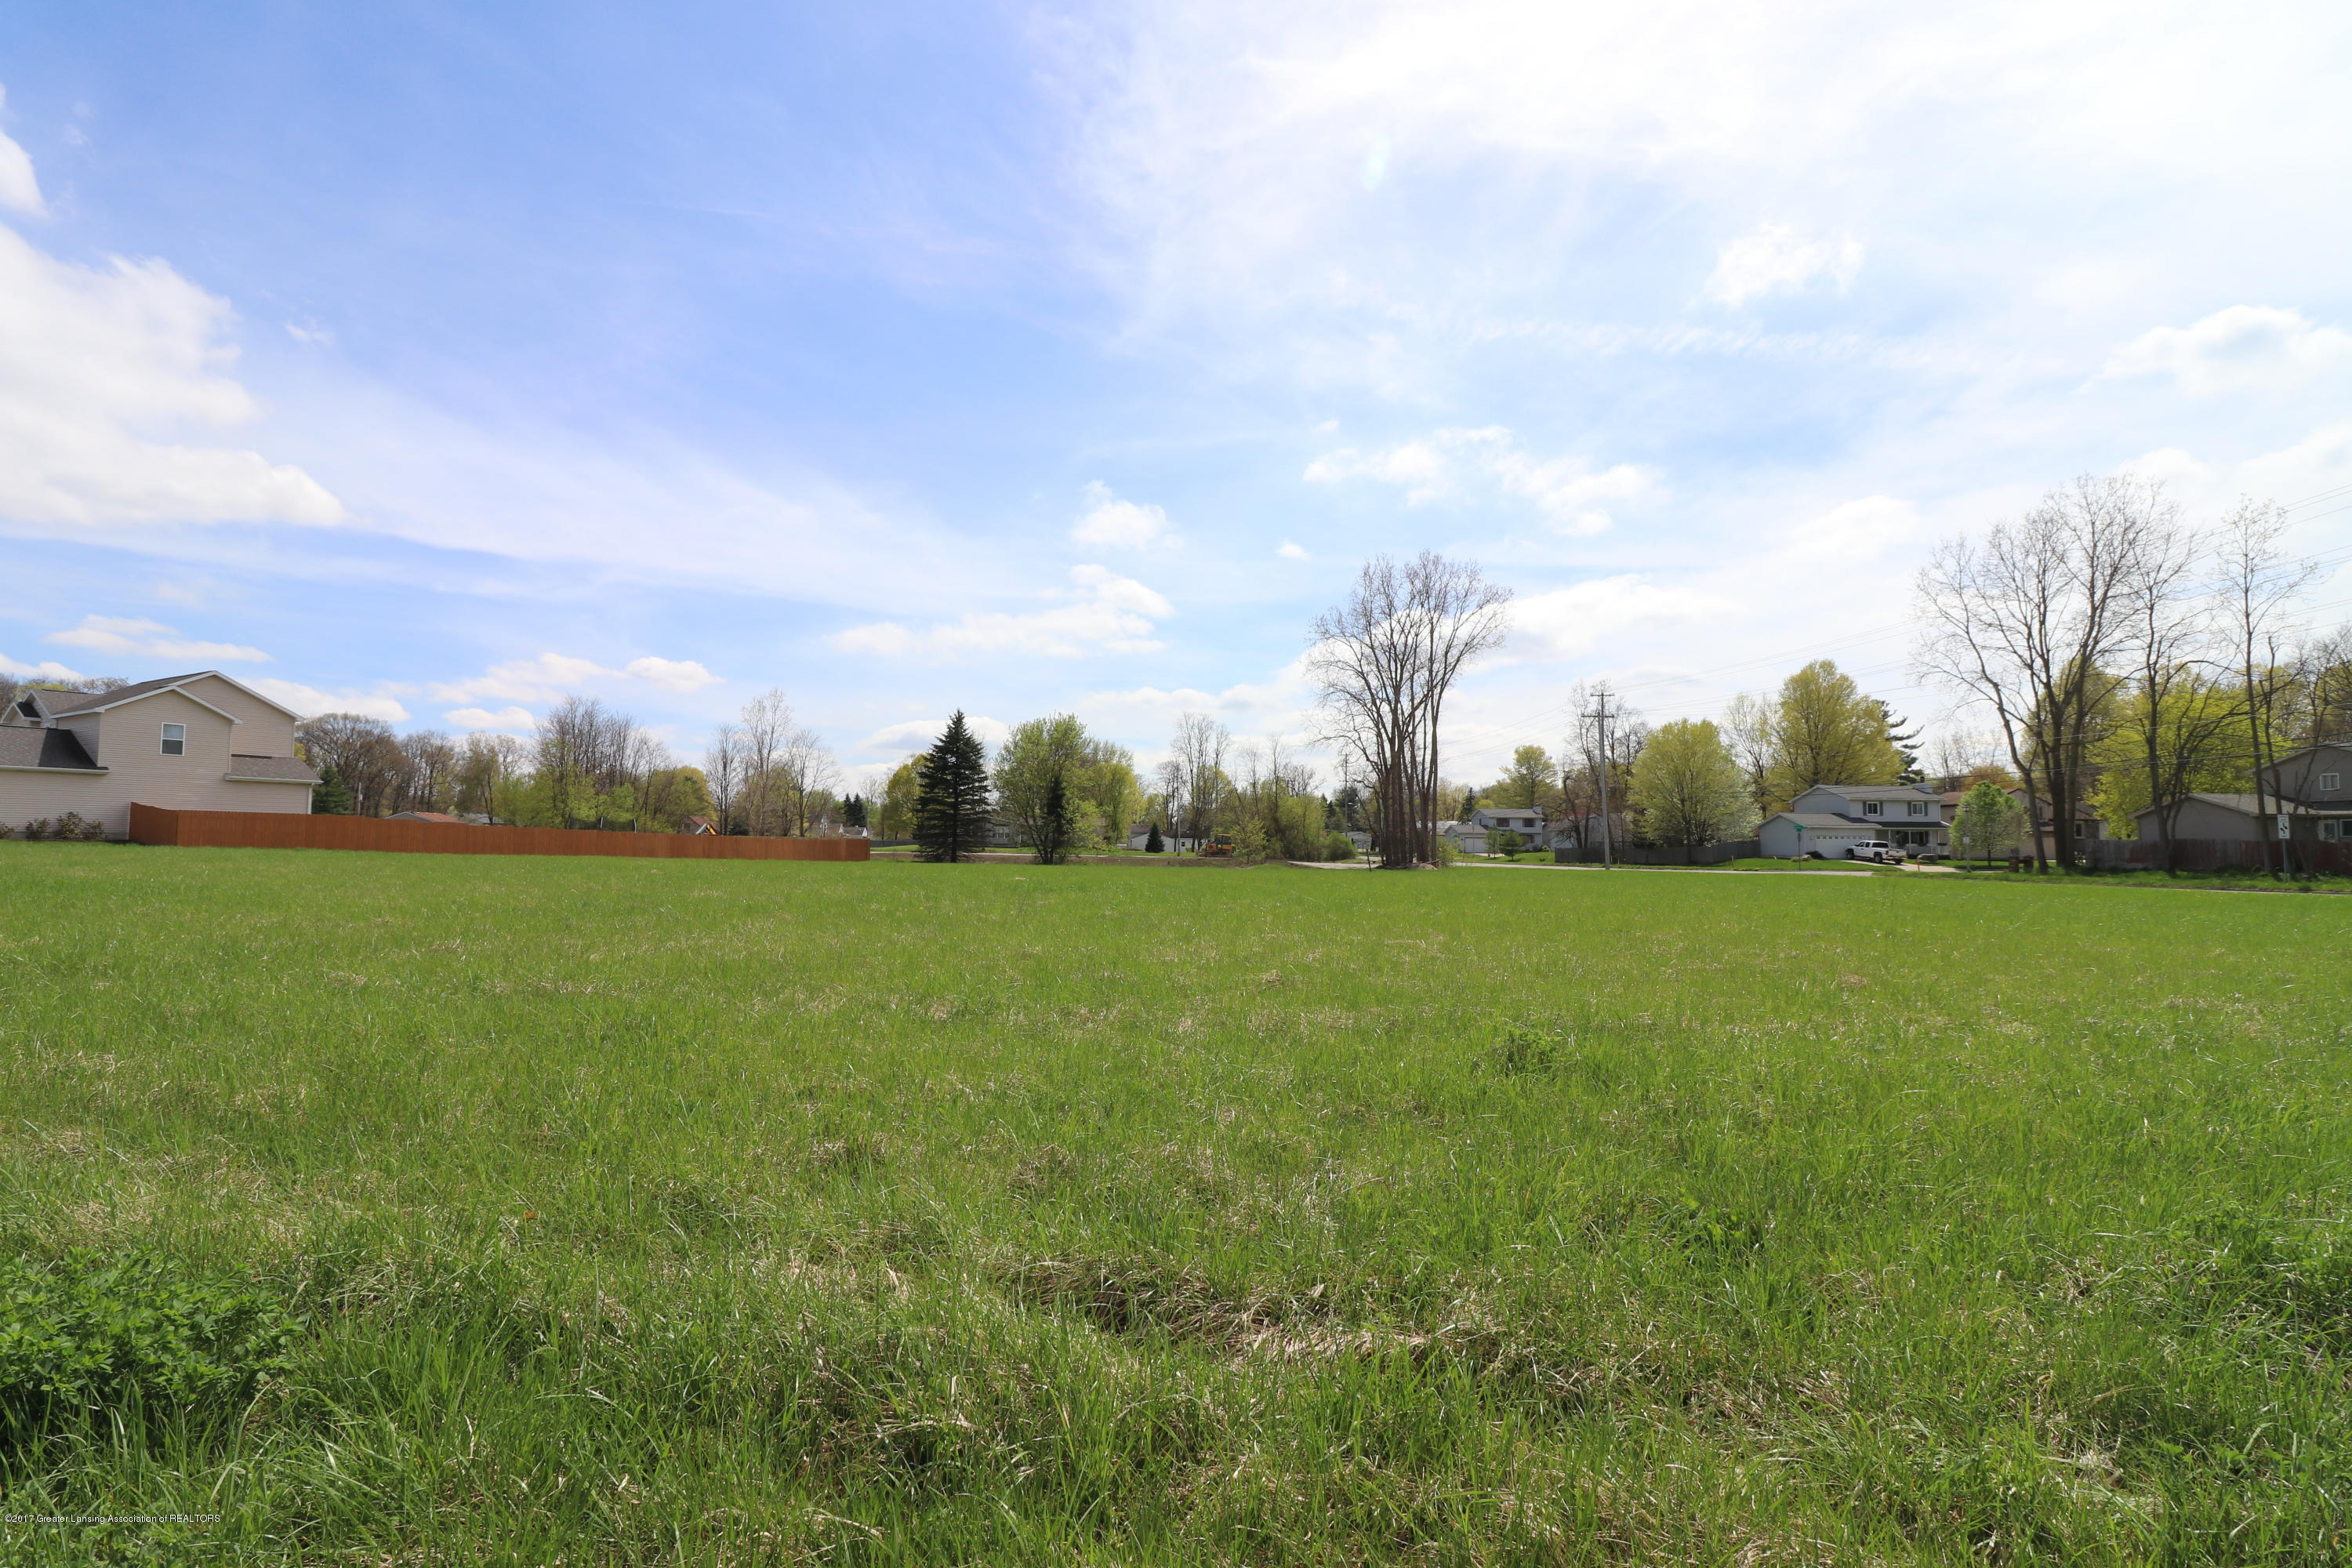 4485 Helmsway Dr - Lot 59 - 2